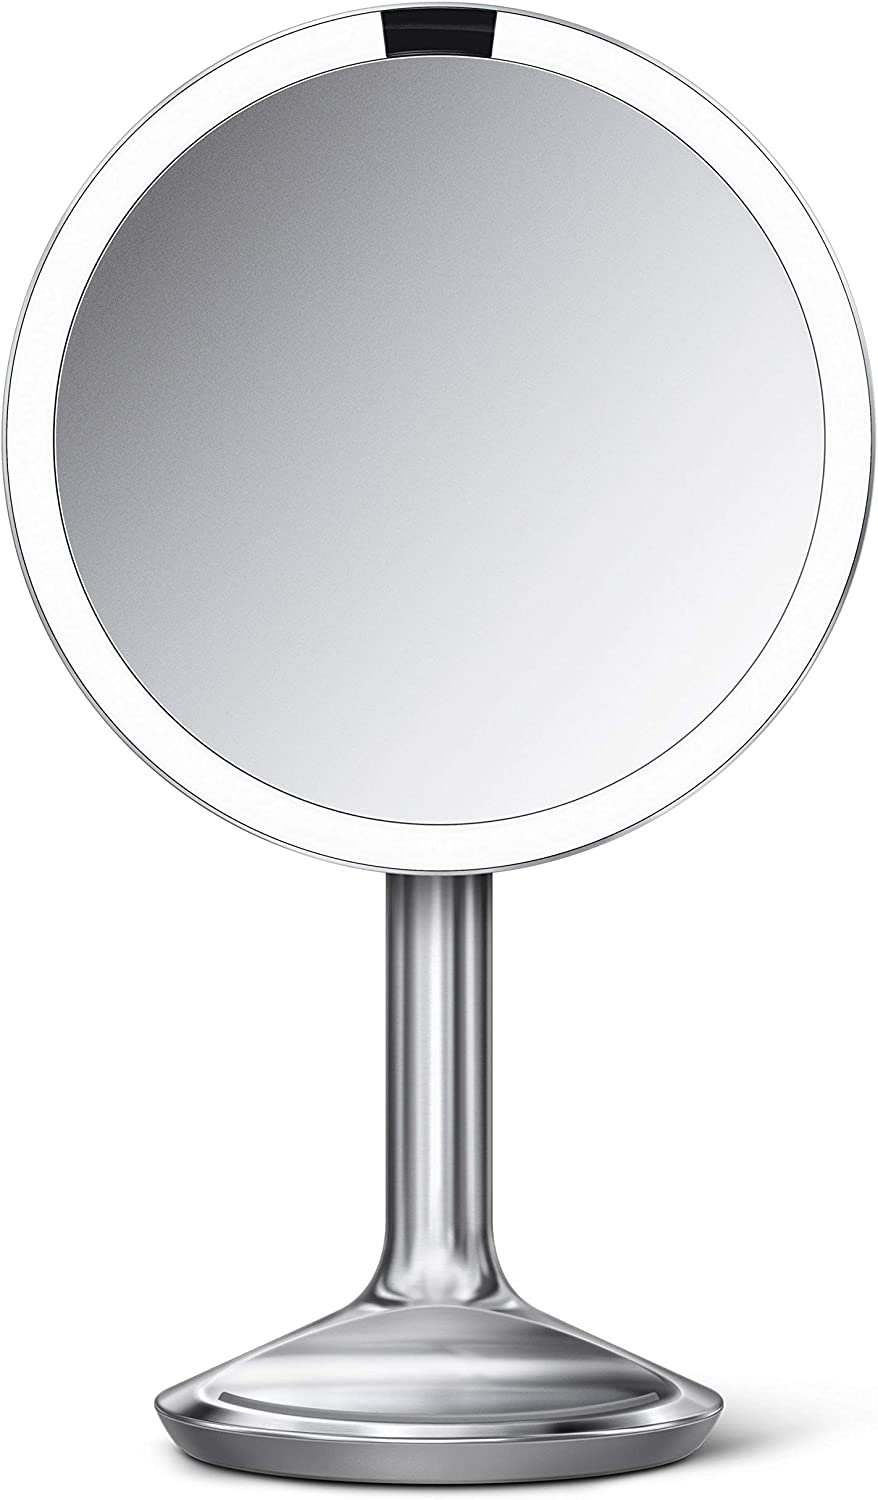 "simplehuman Sensor Lighted Makeup Vanity Mirror SE, 8"" Round, 5X Magnification, Brushed Stainless Steel"